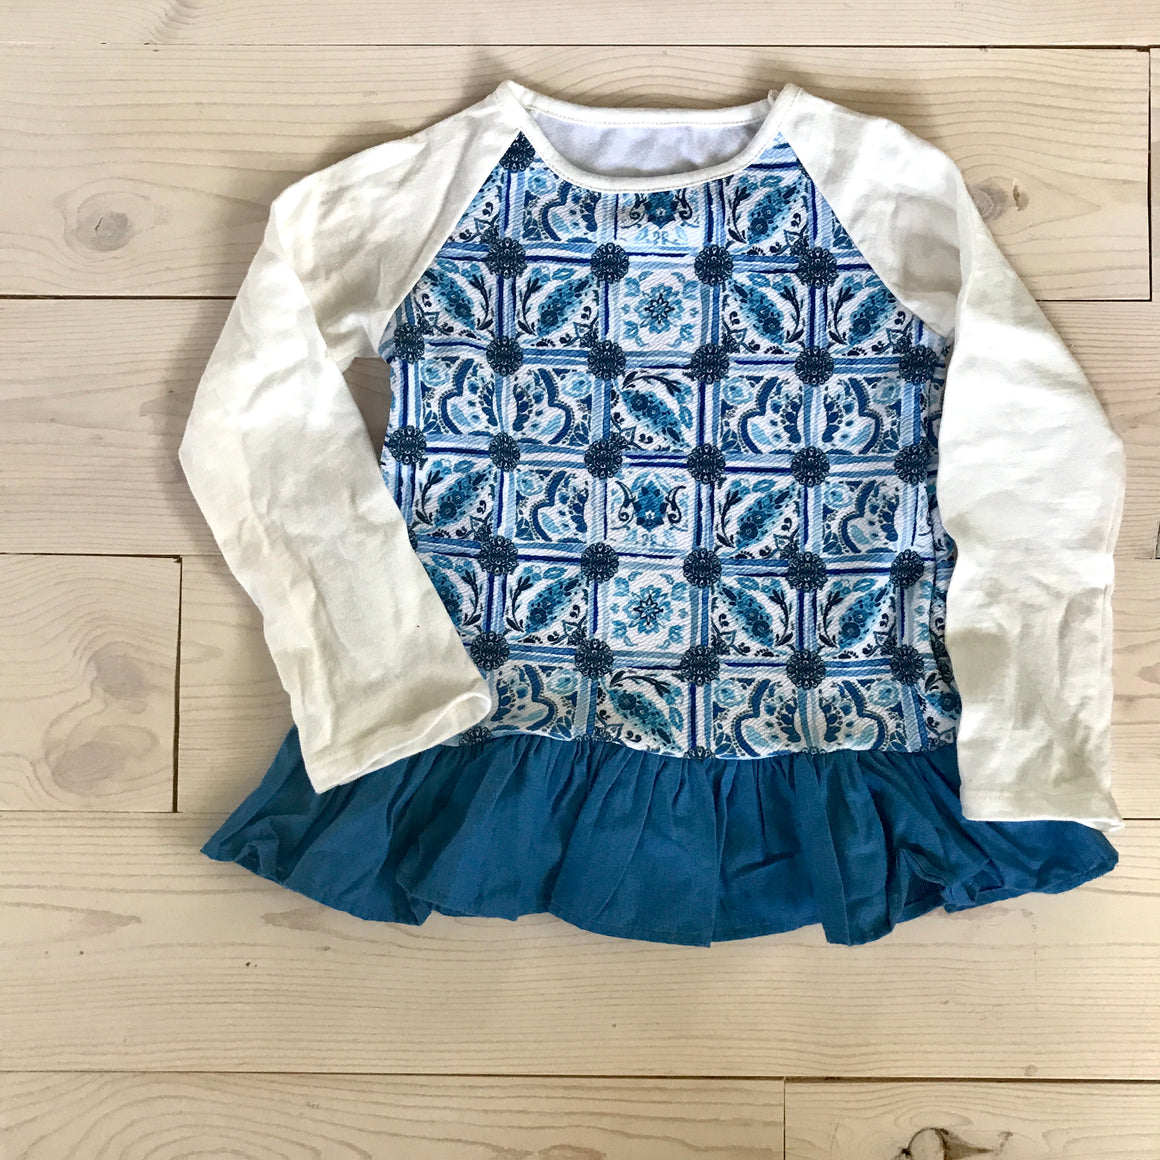 Playdate Top - Blue Spring 16 Sample - Size 3